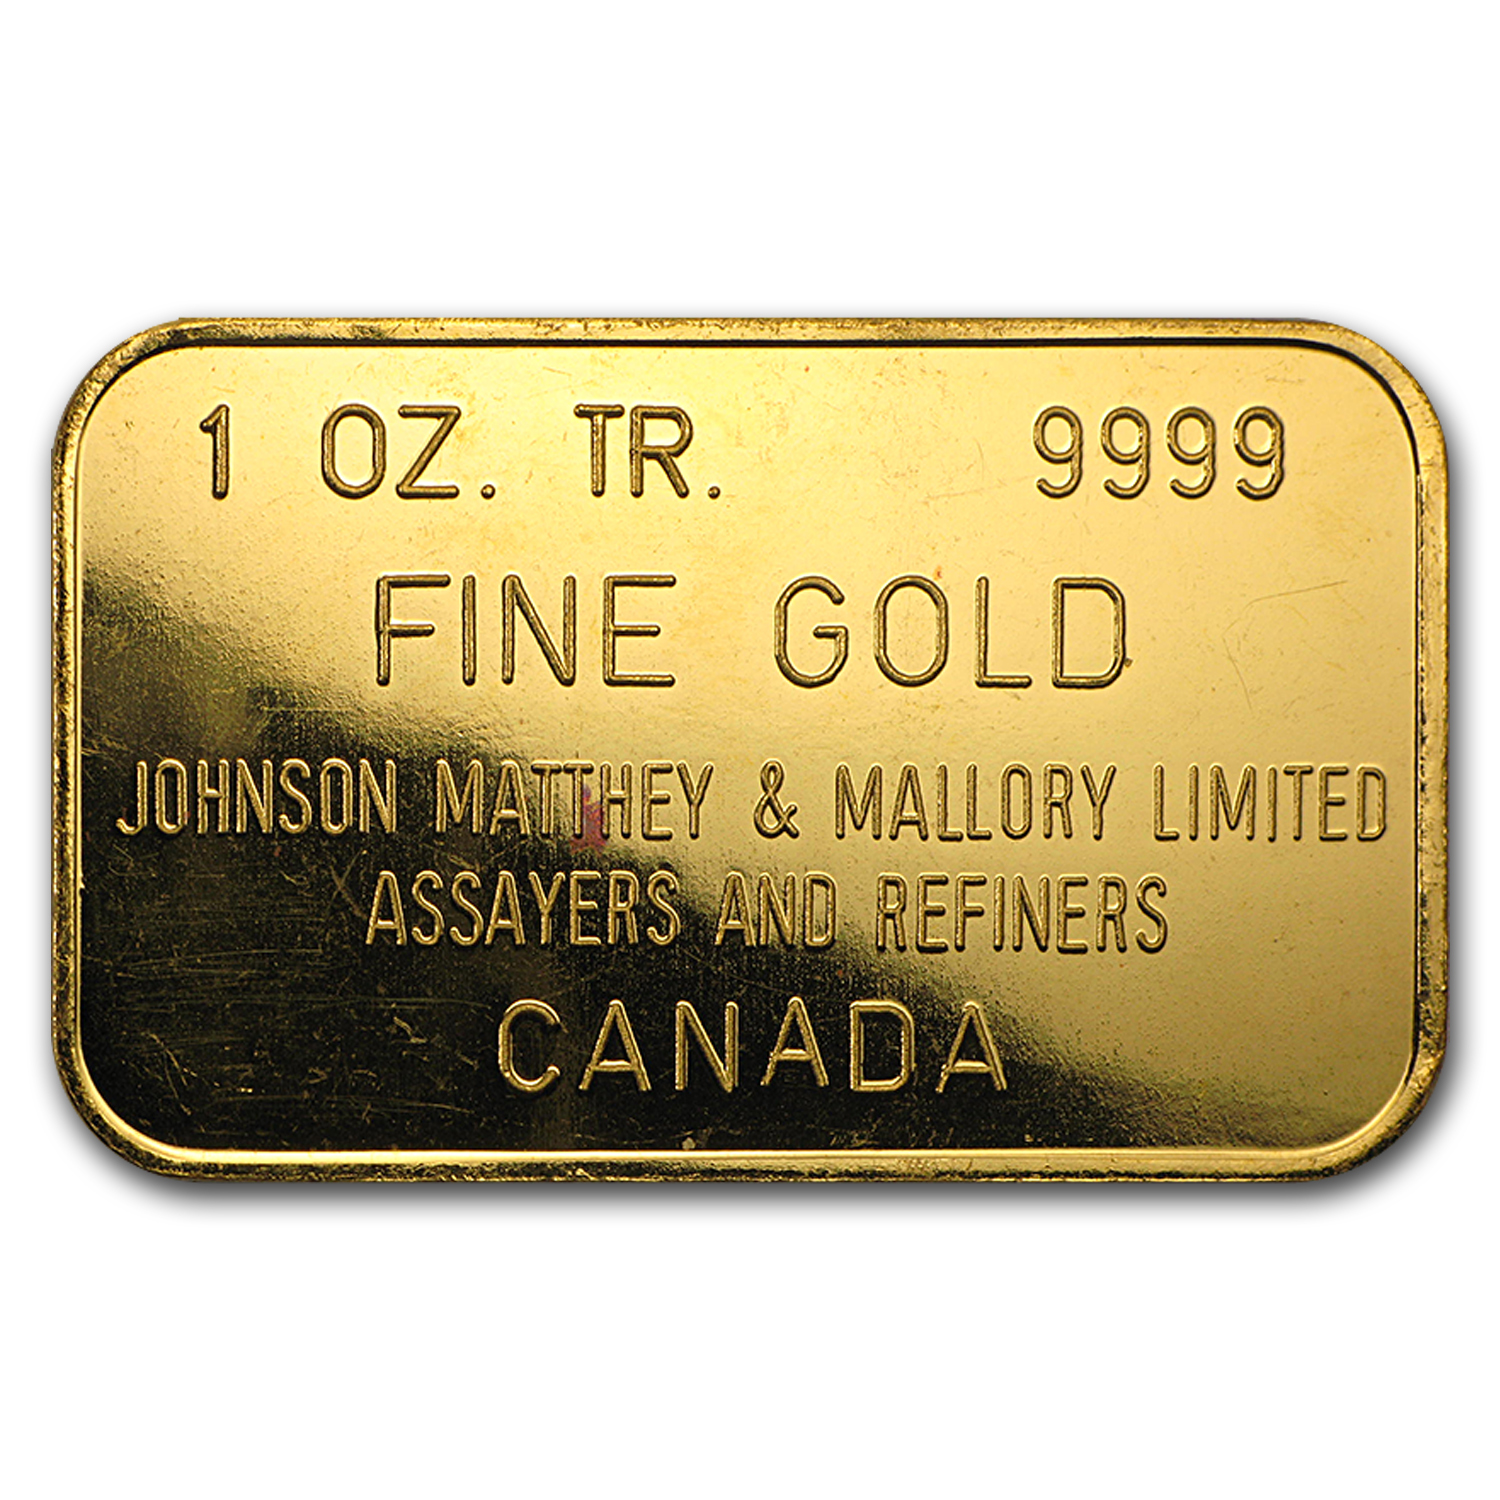 1 oz Gold Bar - Johnson Matthey & Mallory